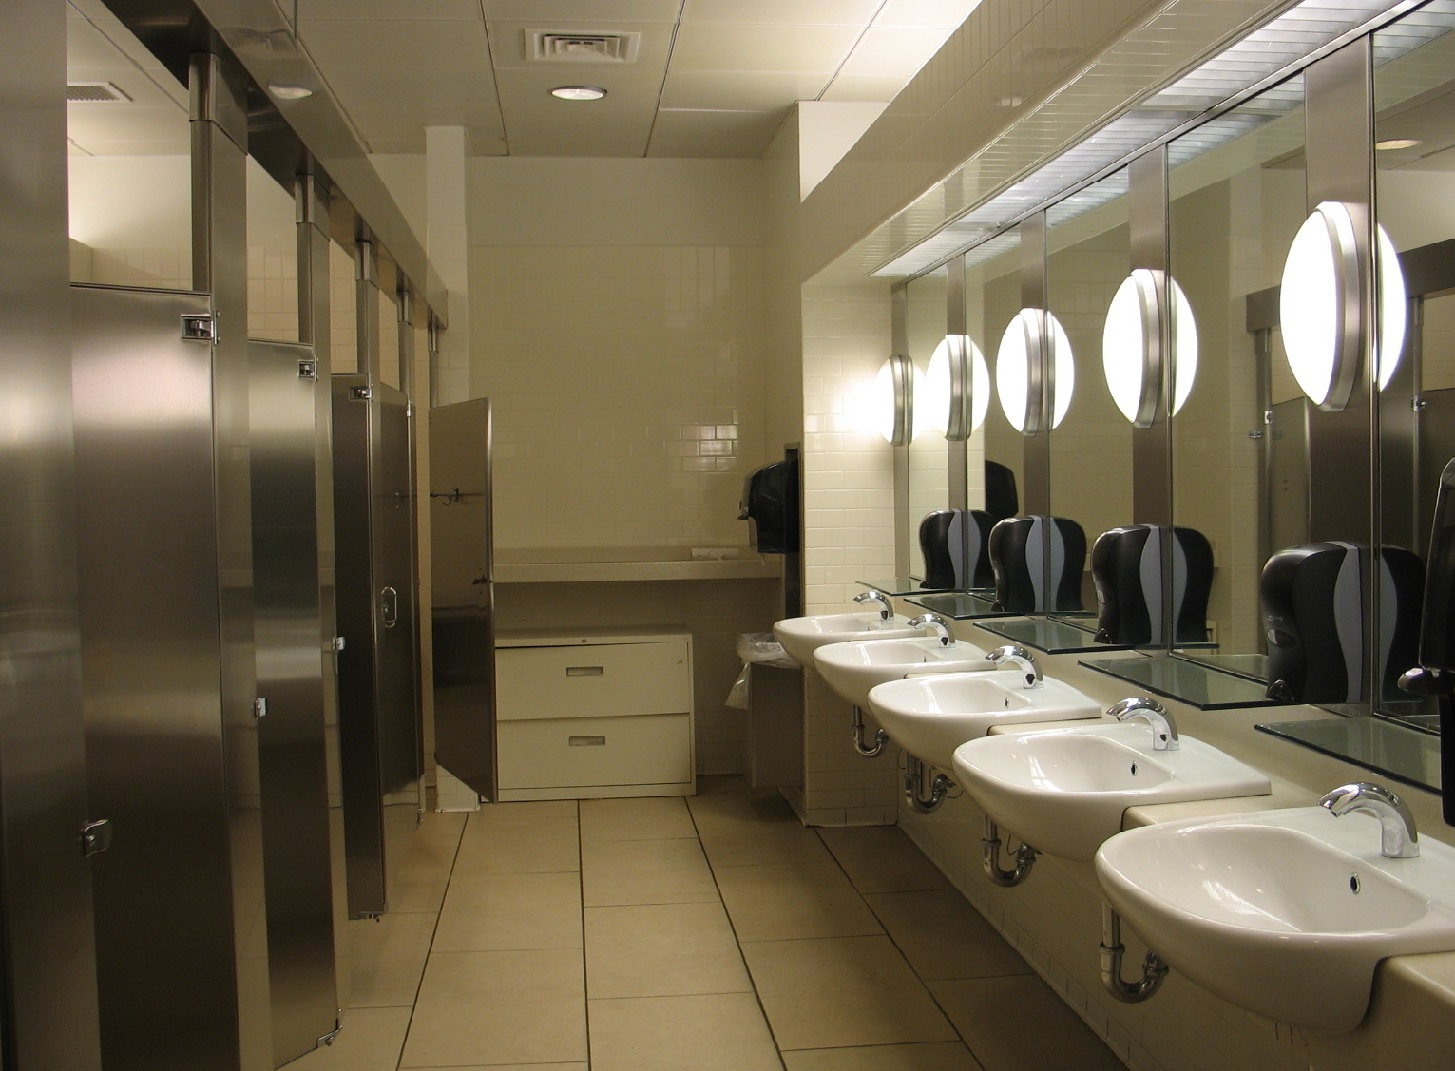 Using the restroom in peace. It s not about me  Using the restroom in peace